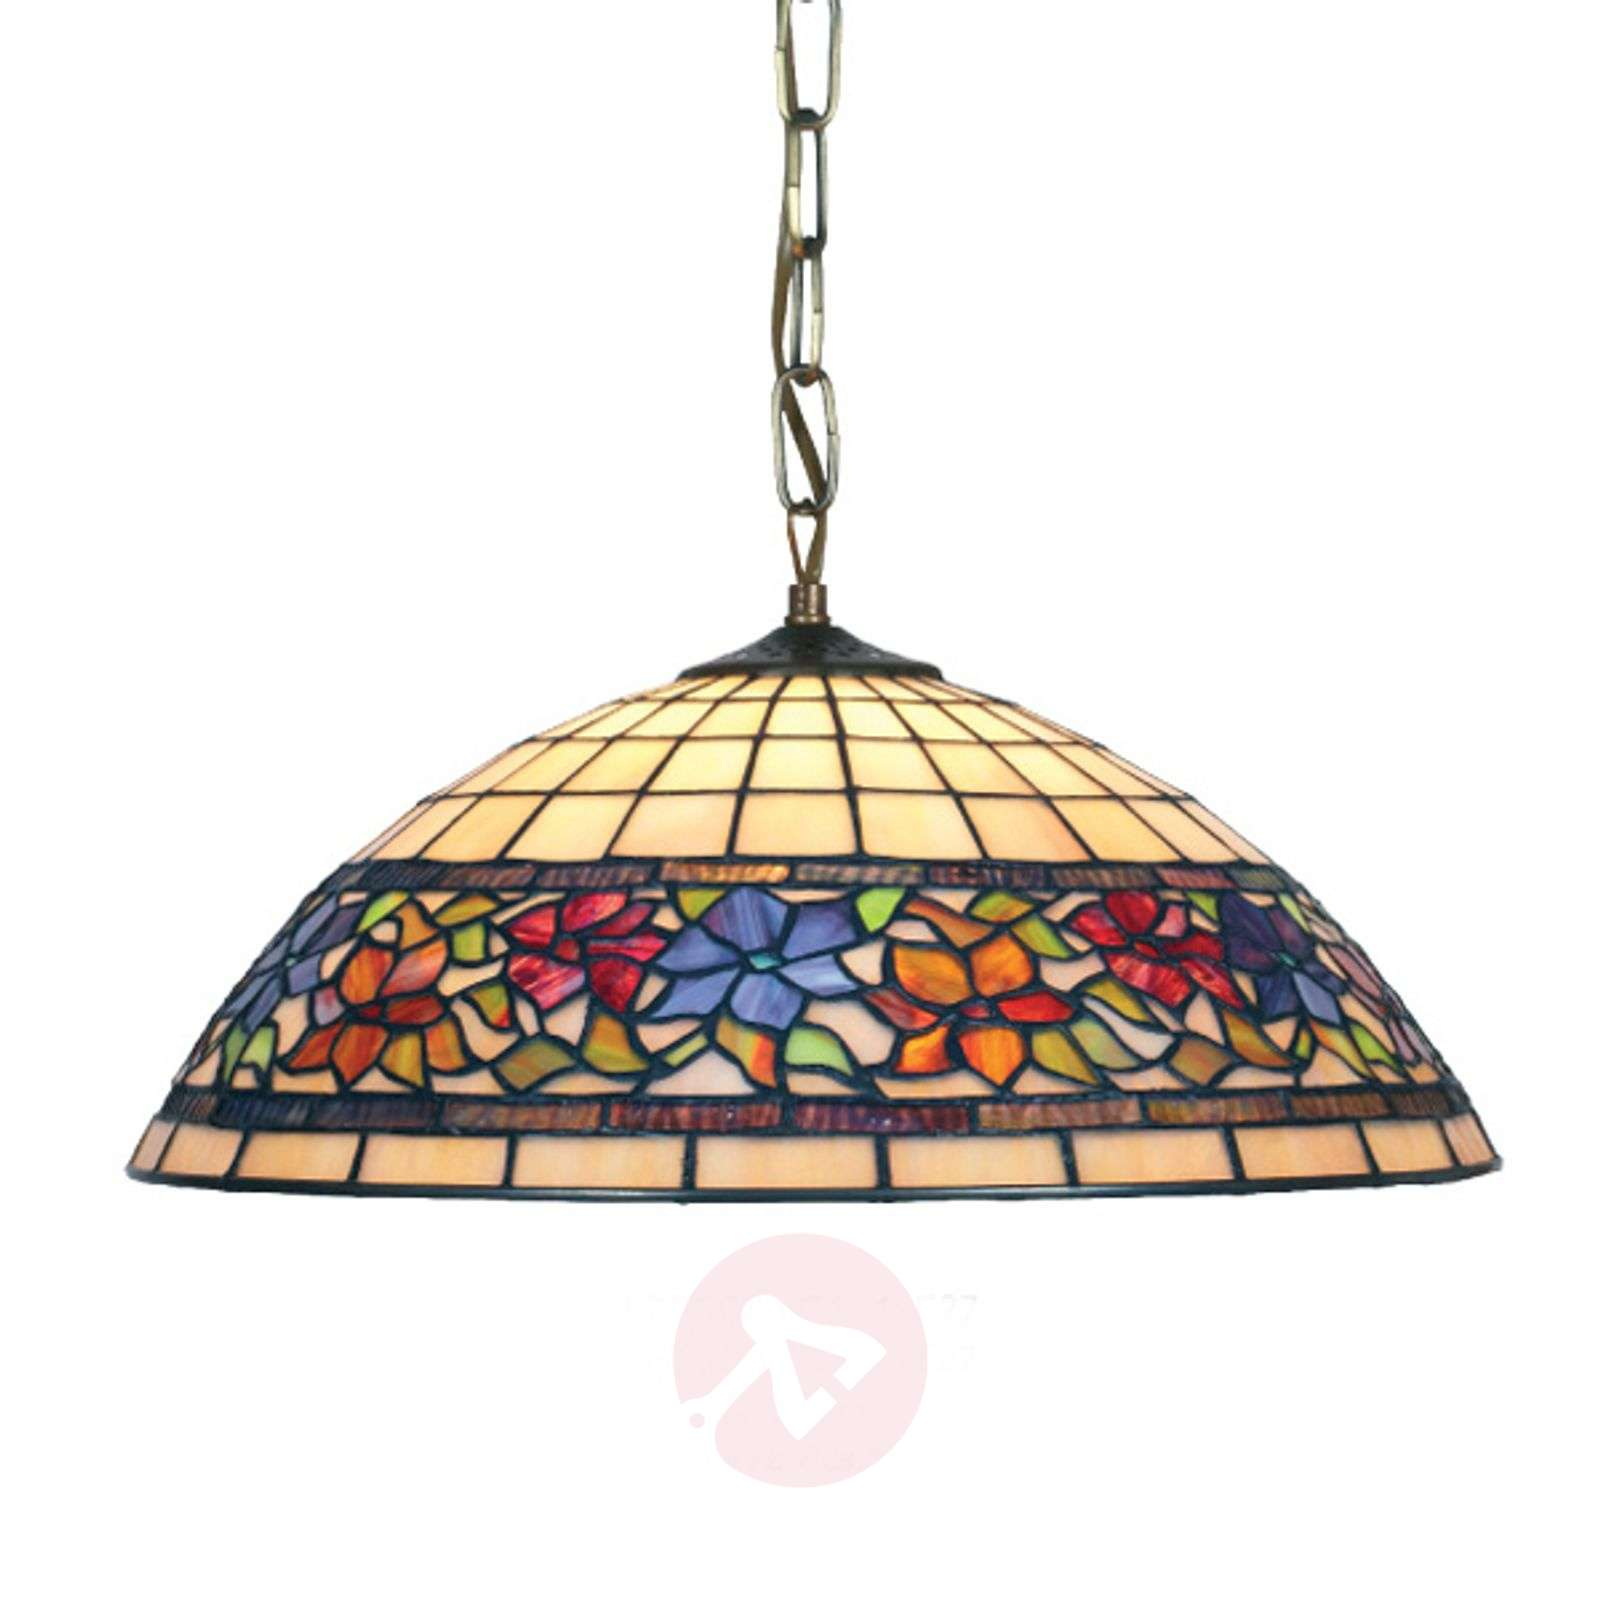 Suspension Flora style Tiffany, bas ouvert 1xE27-1032126-01